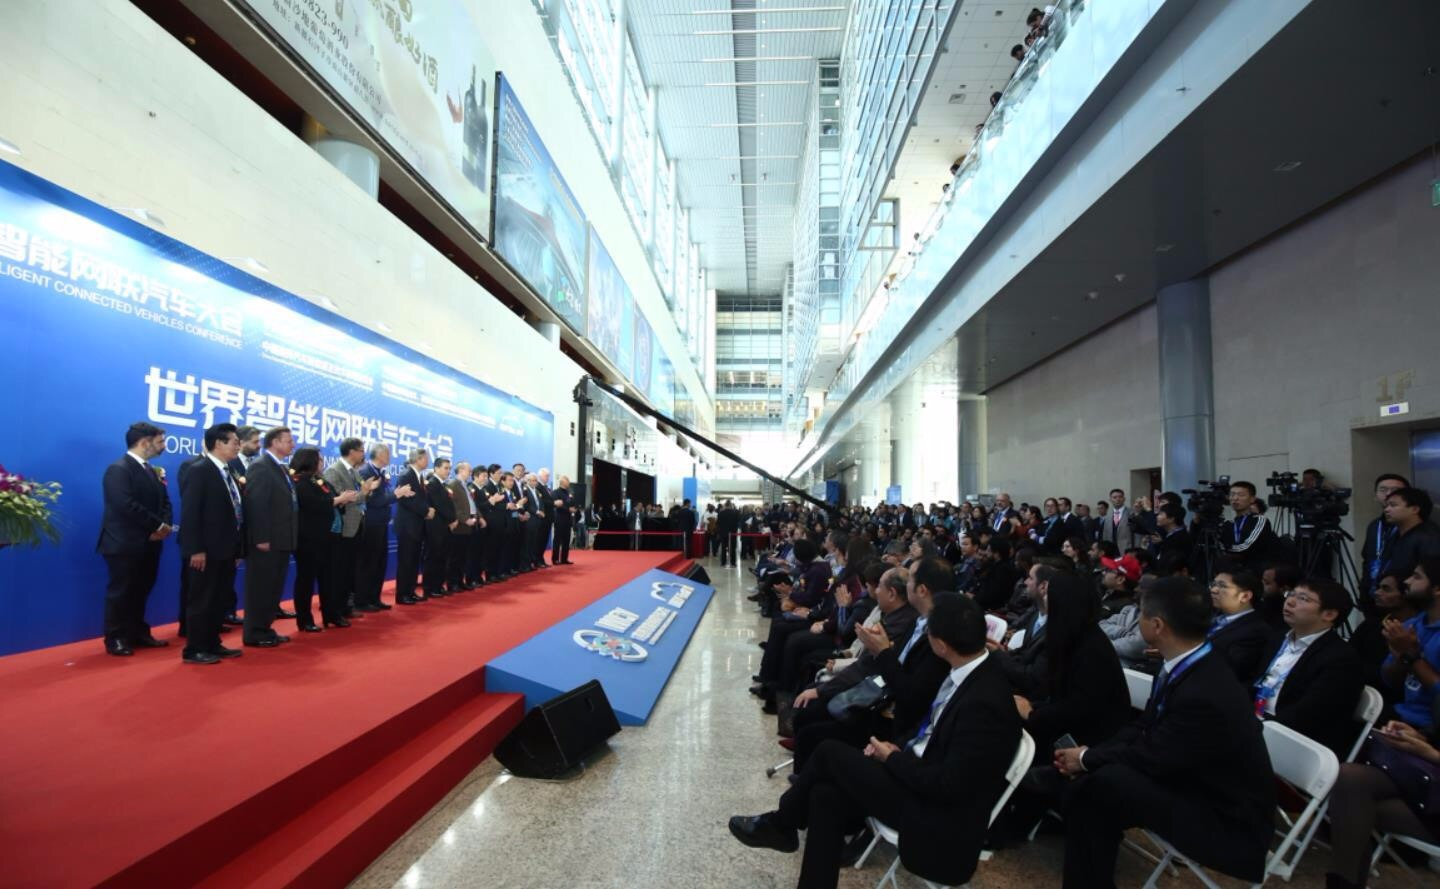 IEEV China 2018 exhibition opened in Beijing